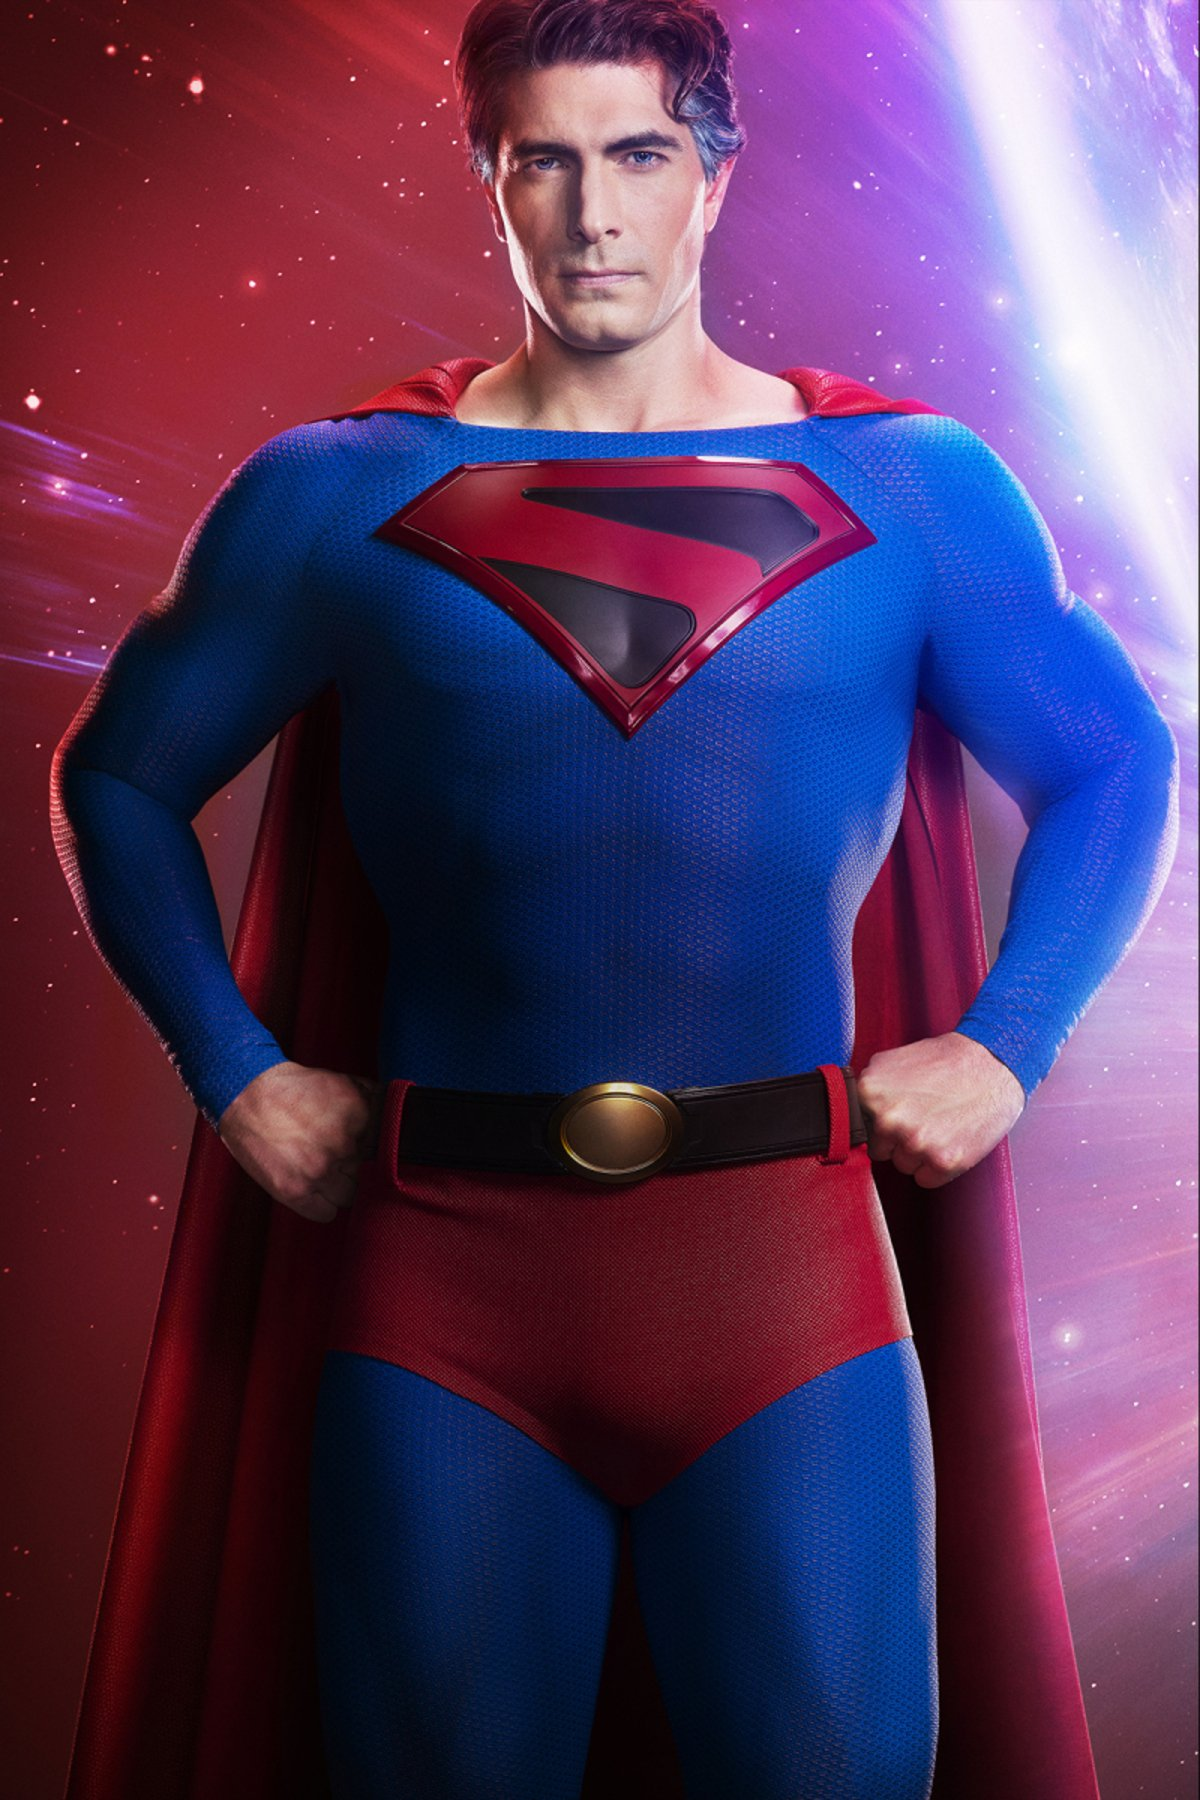 brandon routh arrowverse superman legends of tomorrow crisis on infinite earths the cw